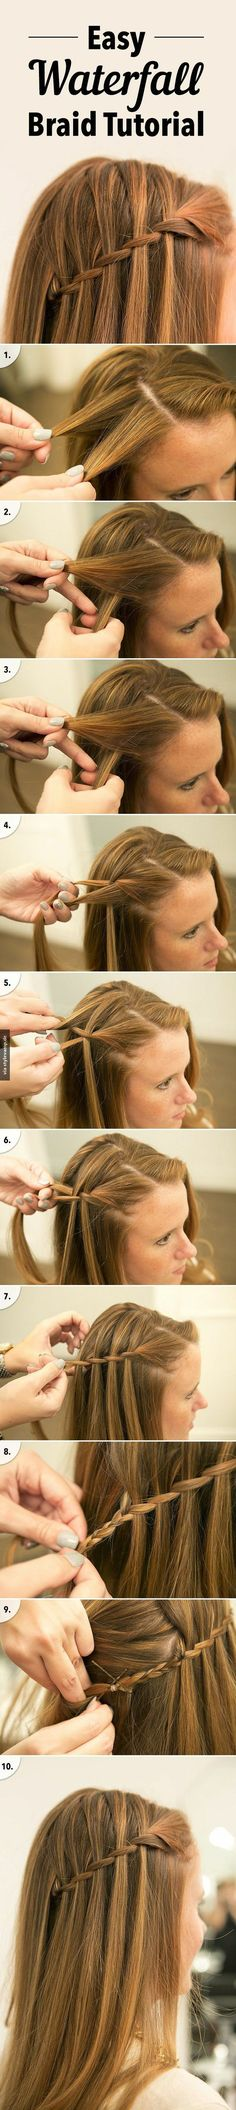 Easy Waterfall Braid Tutorial ♥